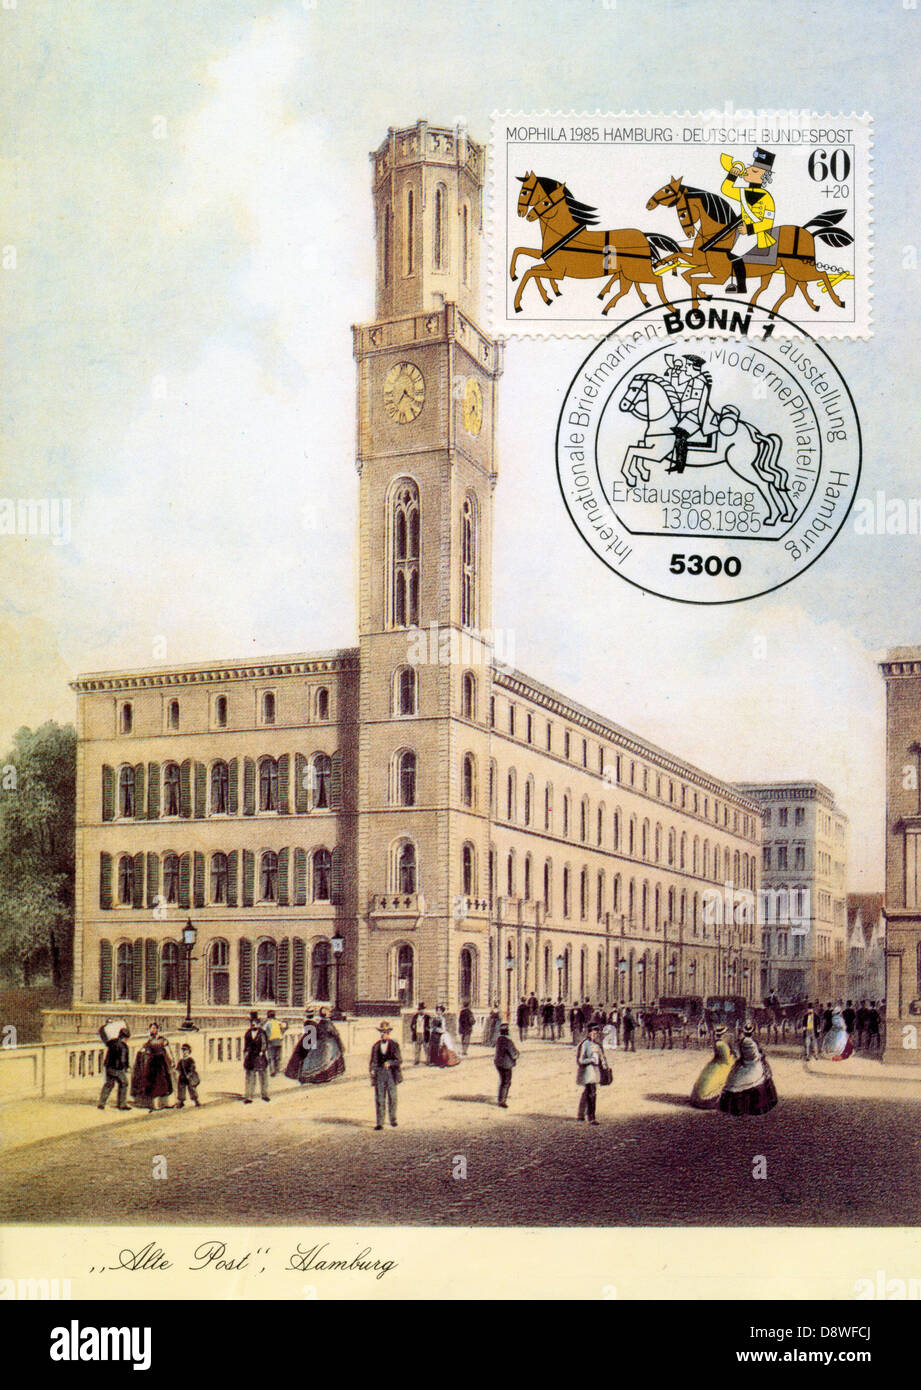 German maxicard (card maximum) and postage stamp - Alte Post, Hamburg - Stock Image